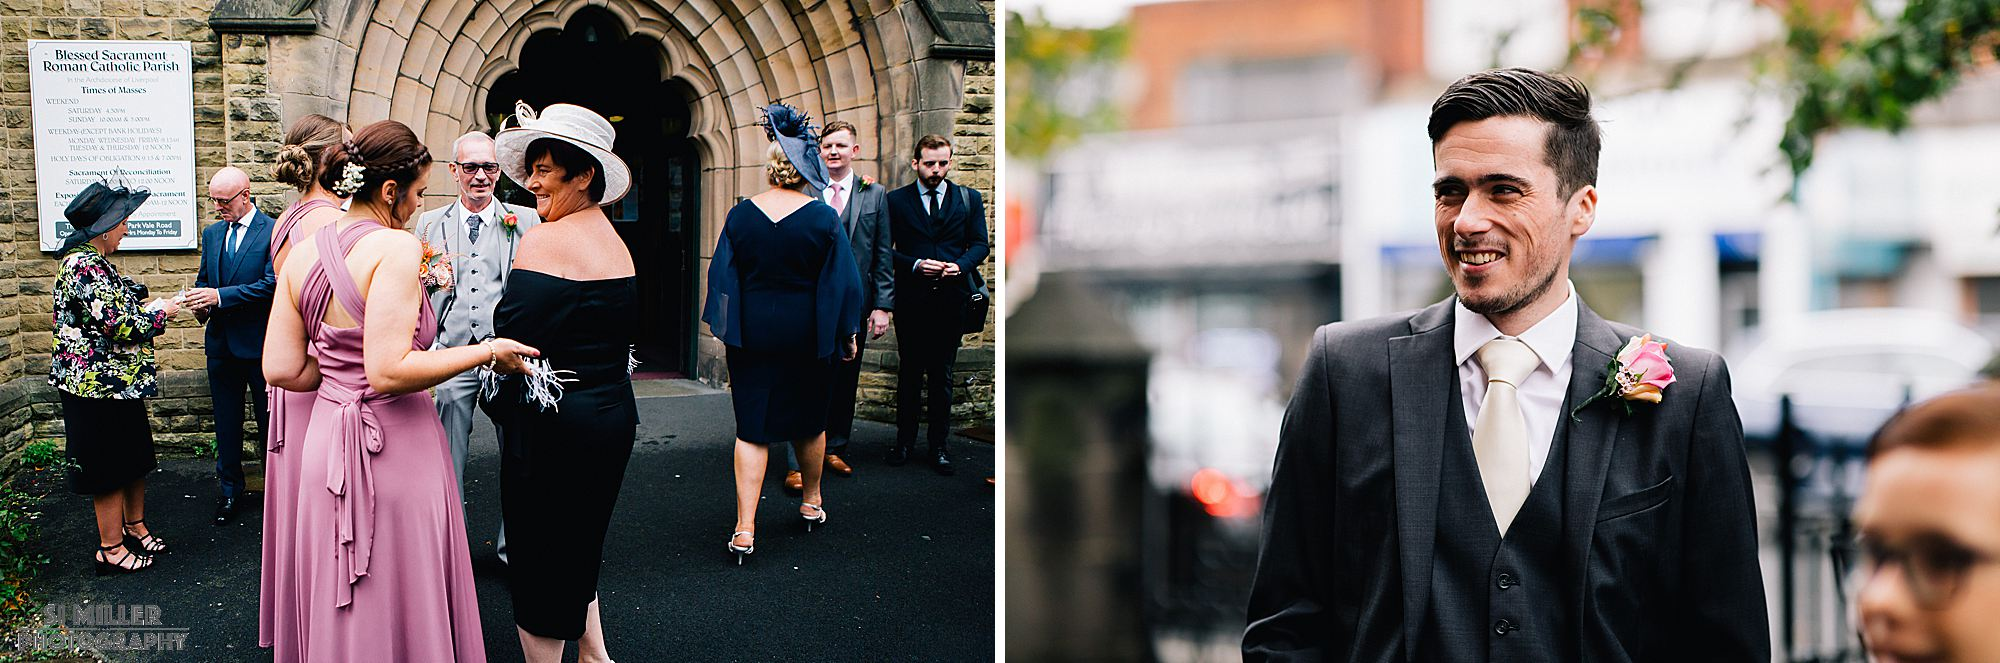 wedding guests arriving at Blessed Sacred Church Liverpool